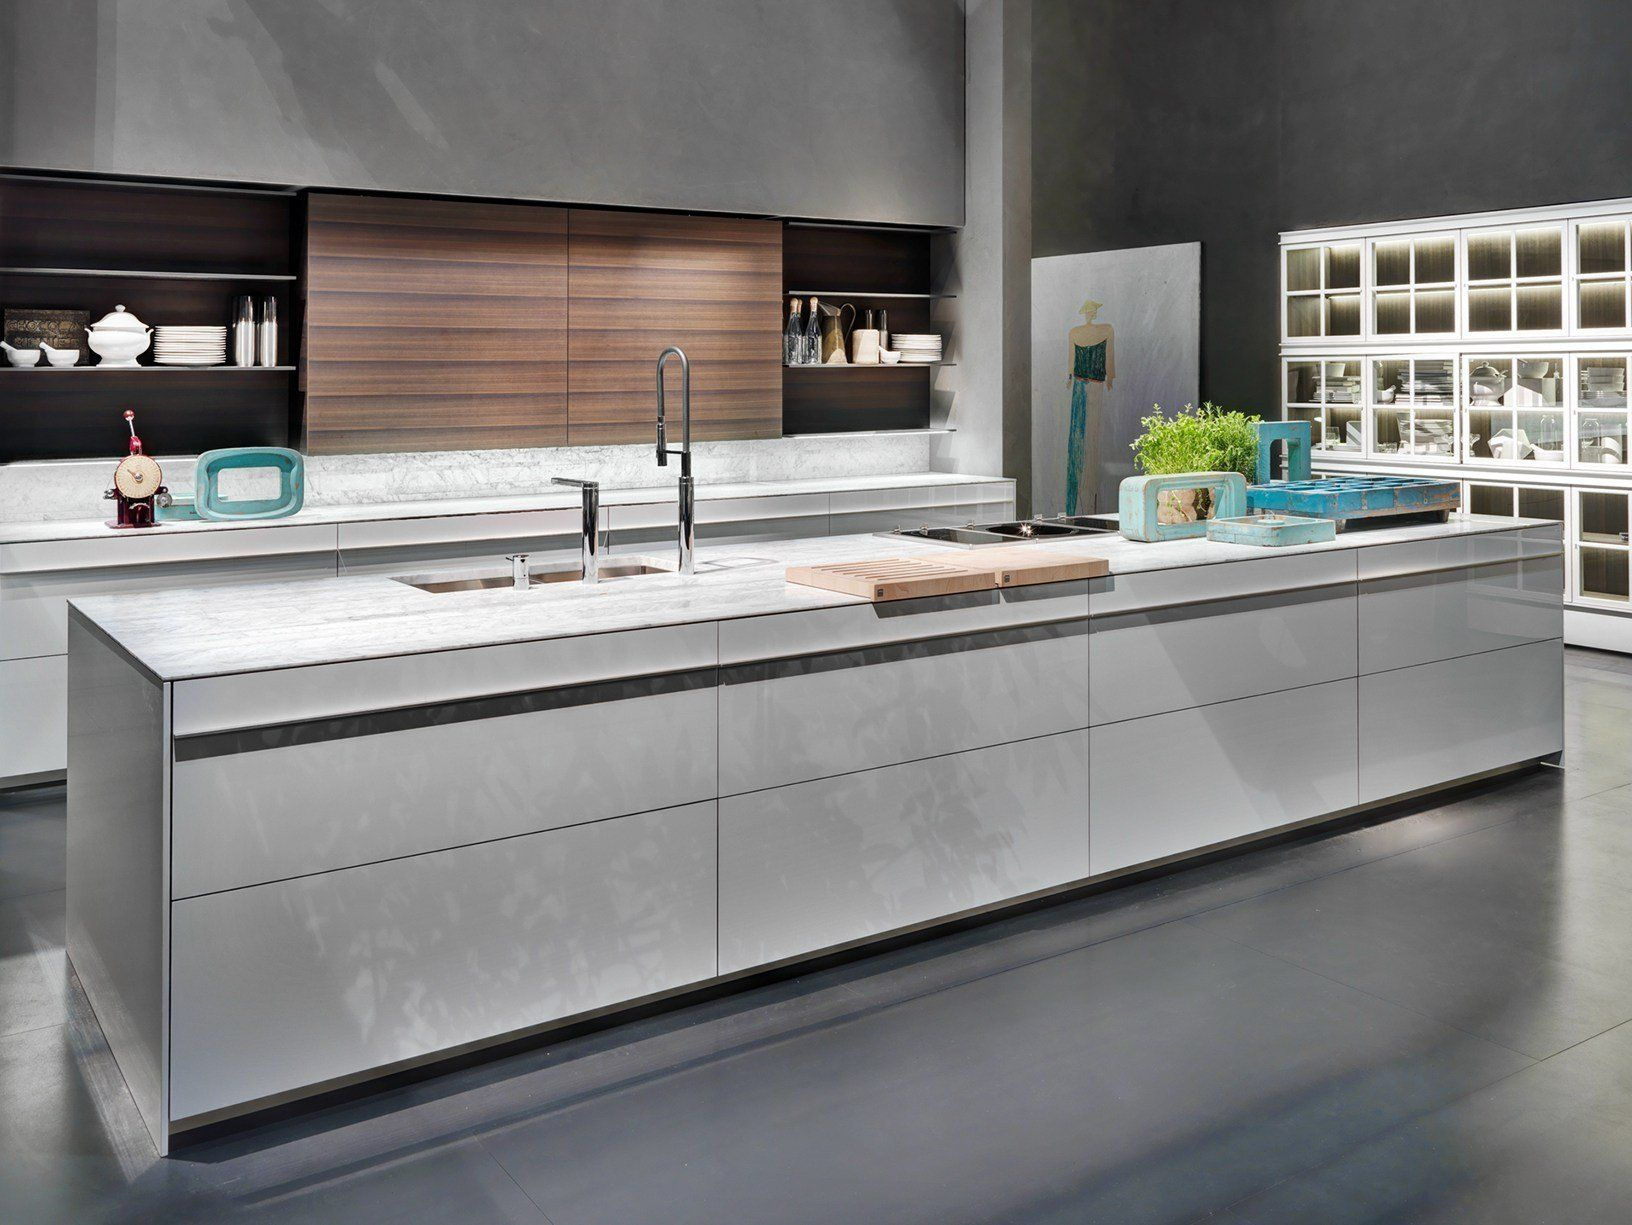 Dada presents new kitchen collections - Cucine dada opinioni ...